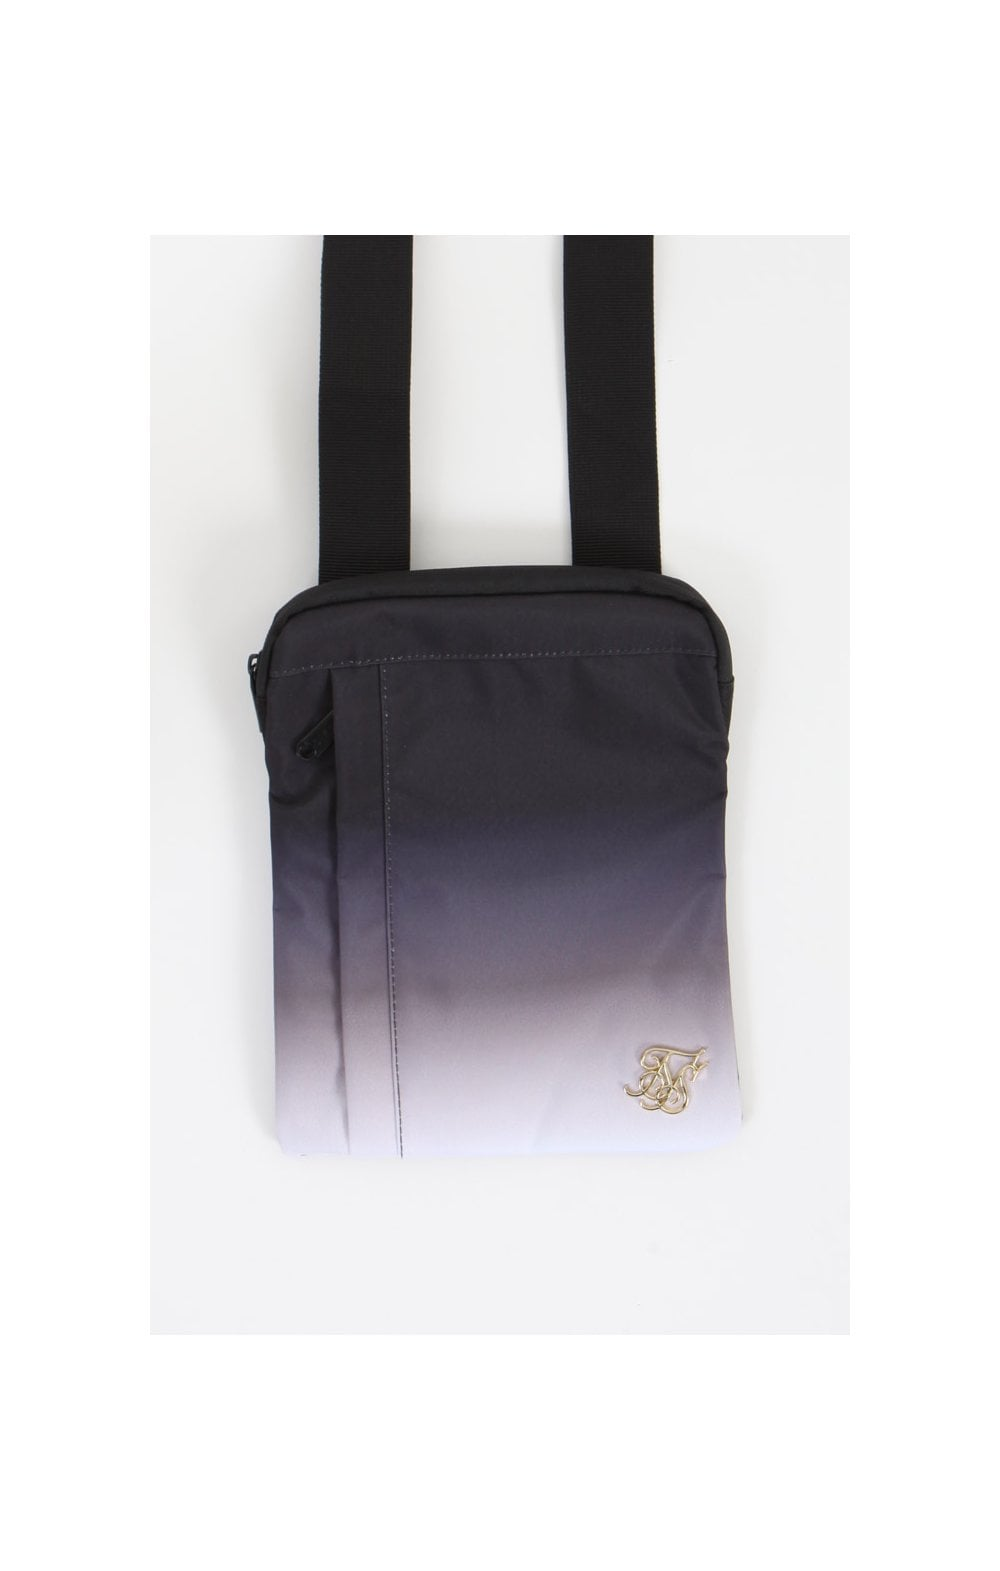 SikSilk Fade Flight Bag - Black & White